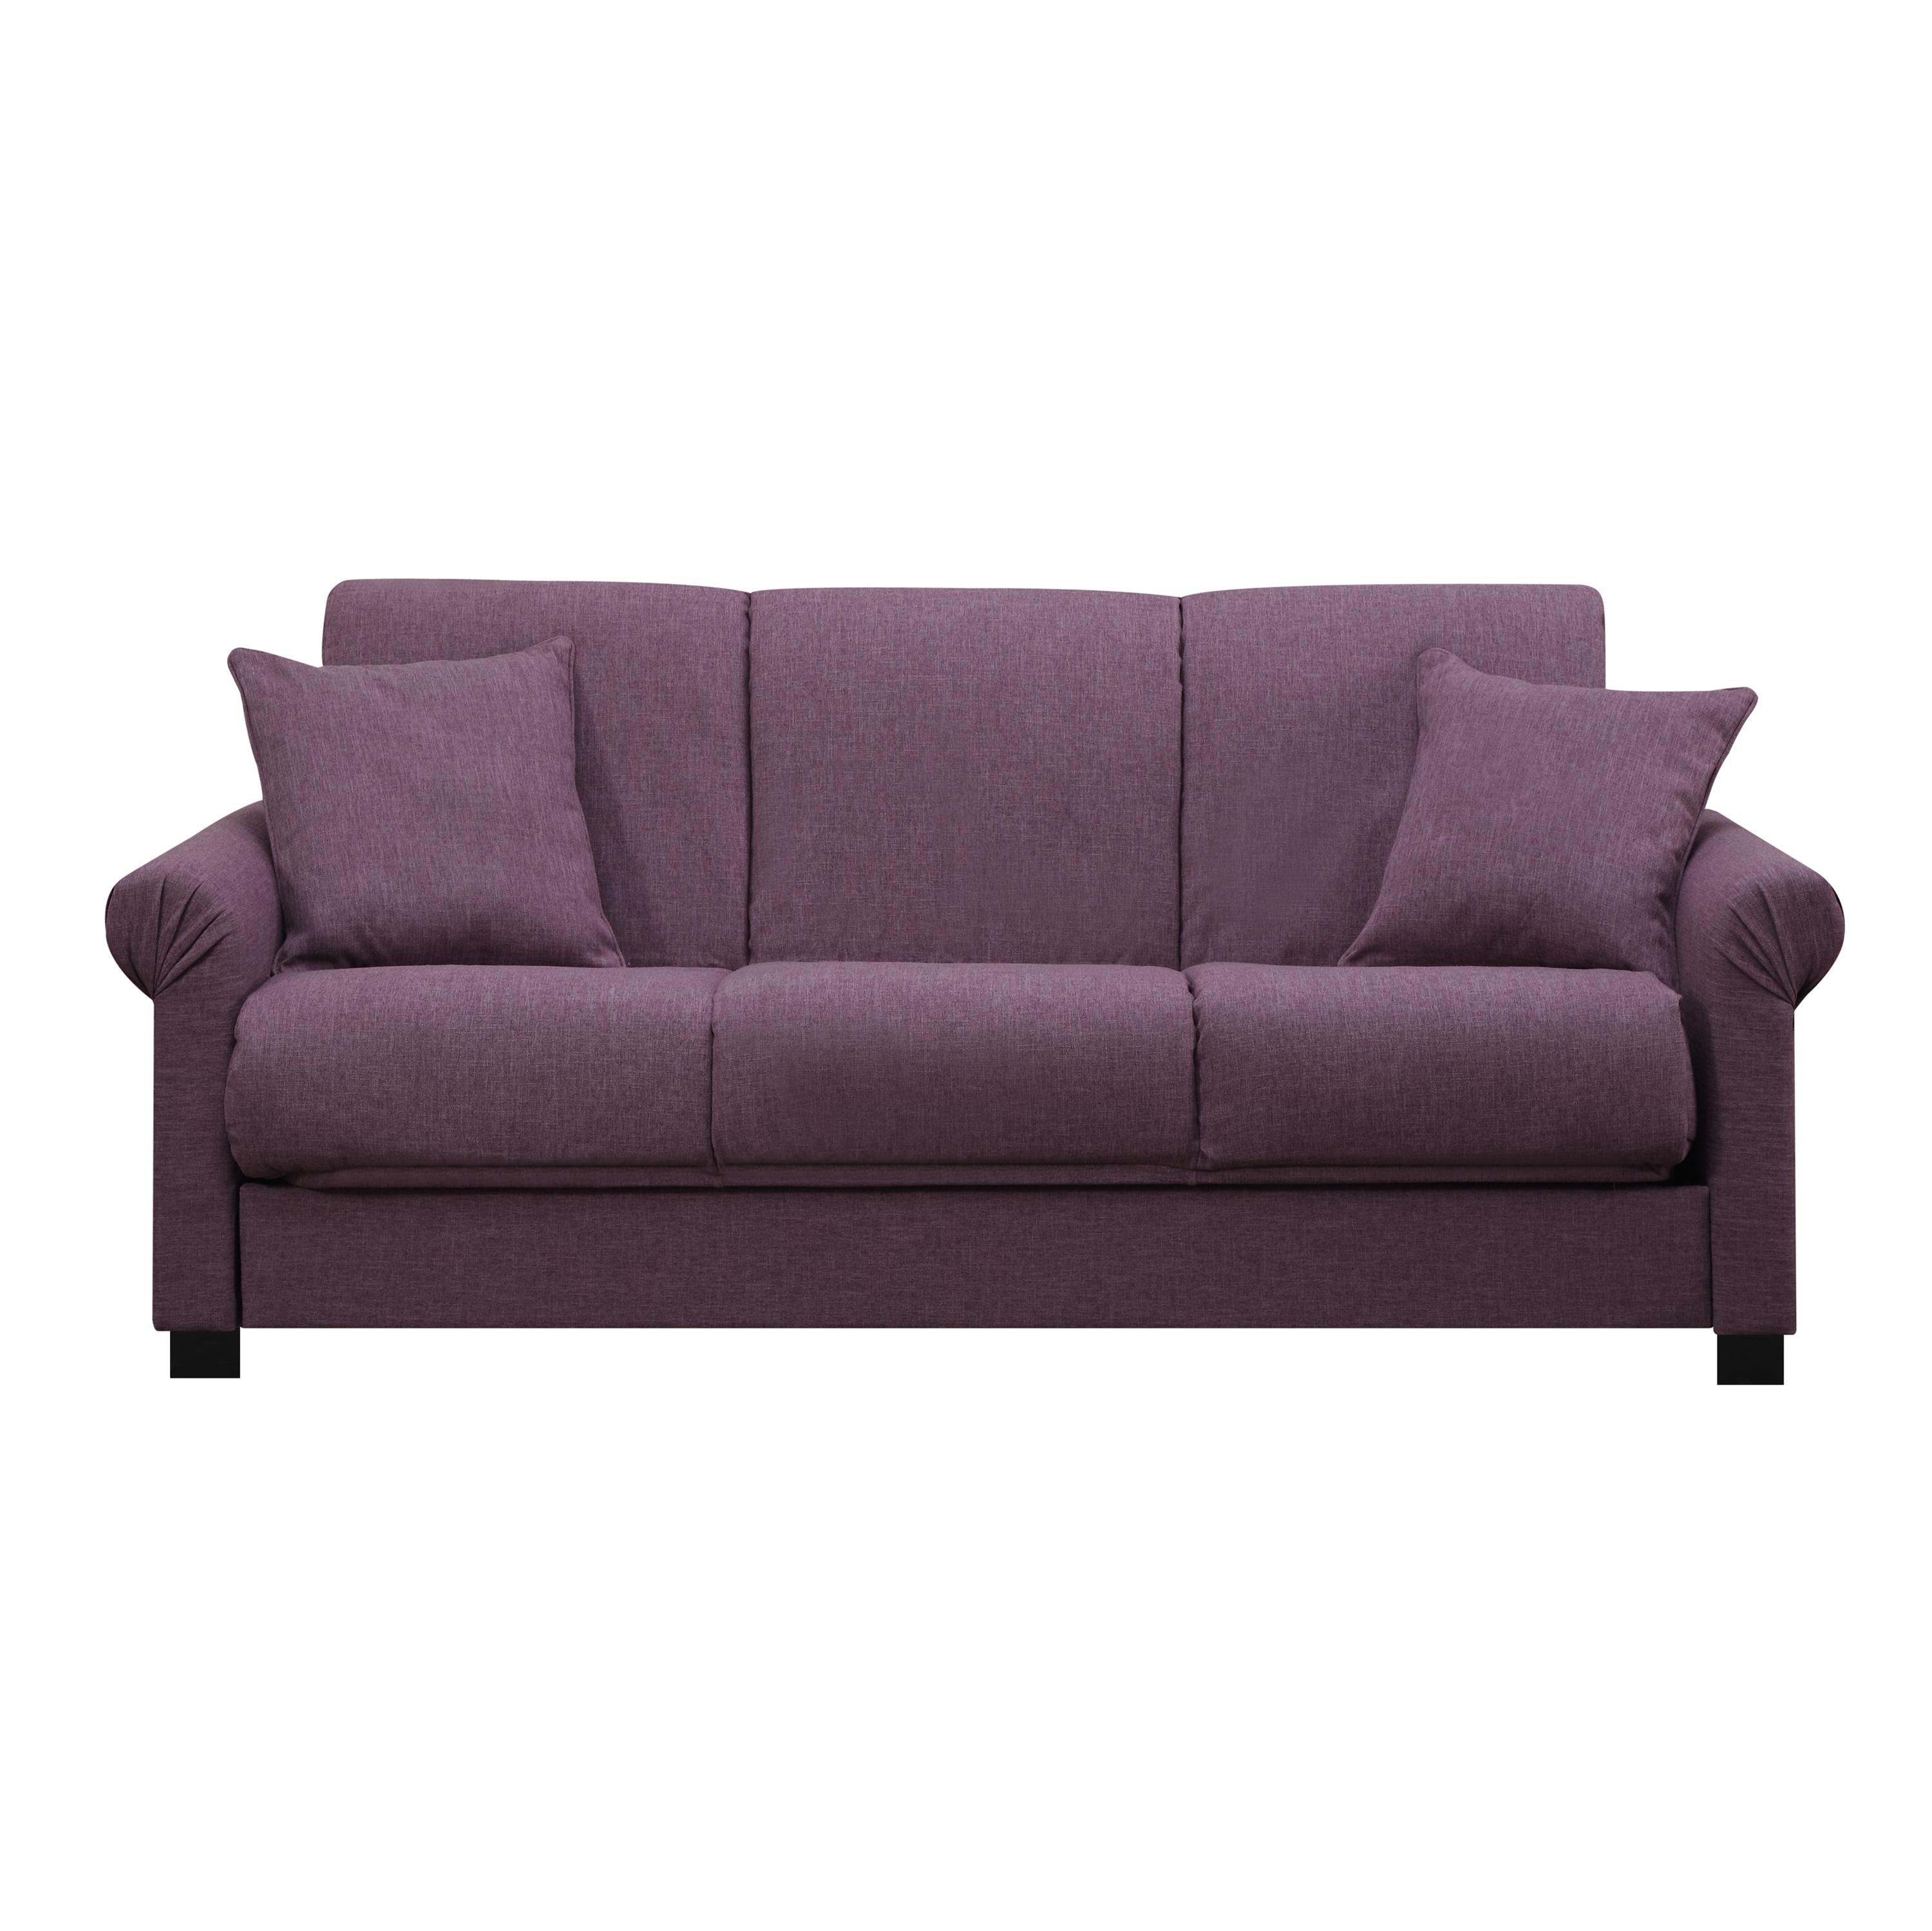 Enhancing a stylish home with sectional sleeper sofa ikea for Sectional sleeper sofa